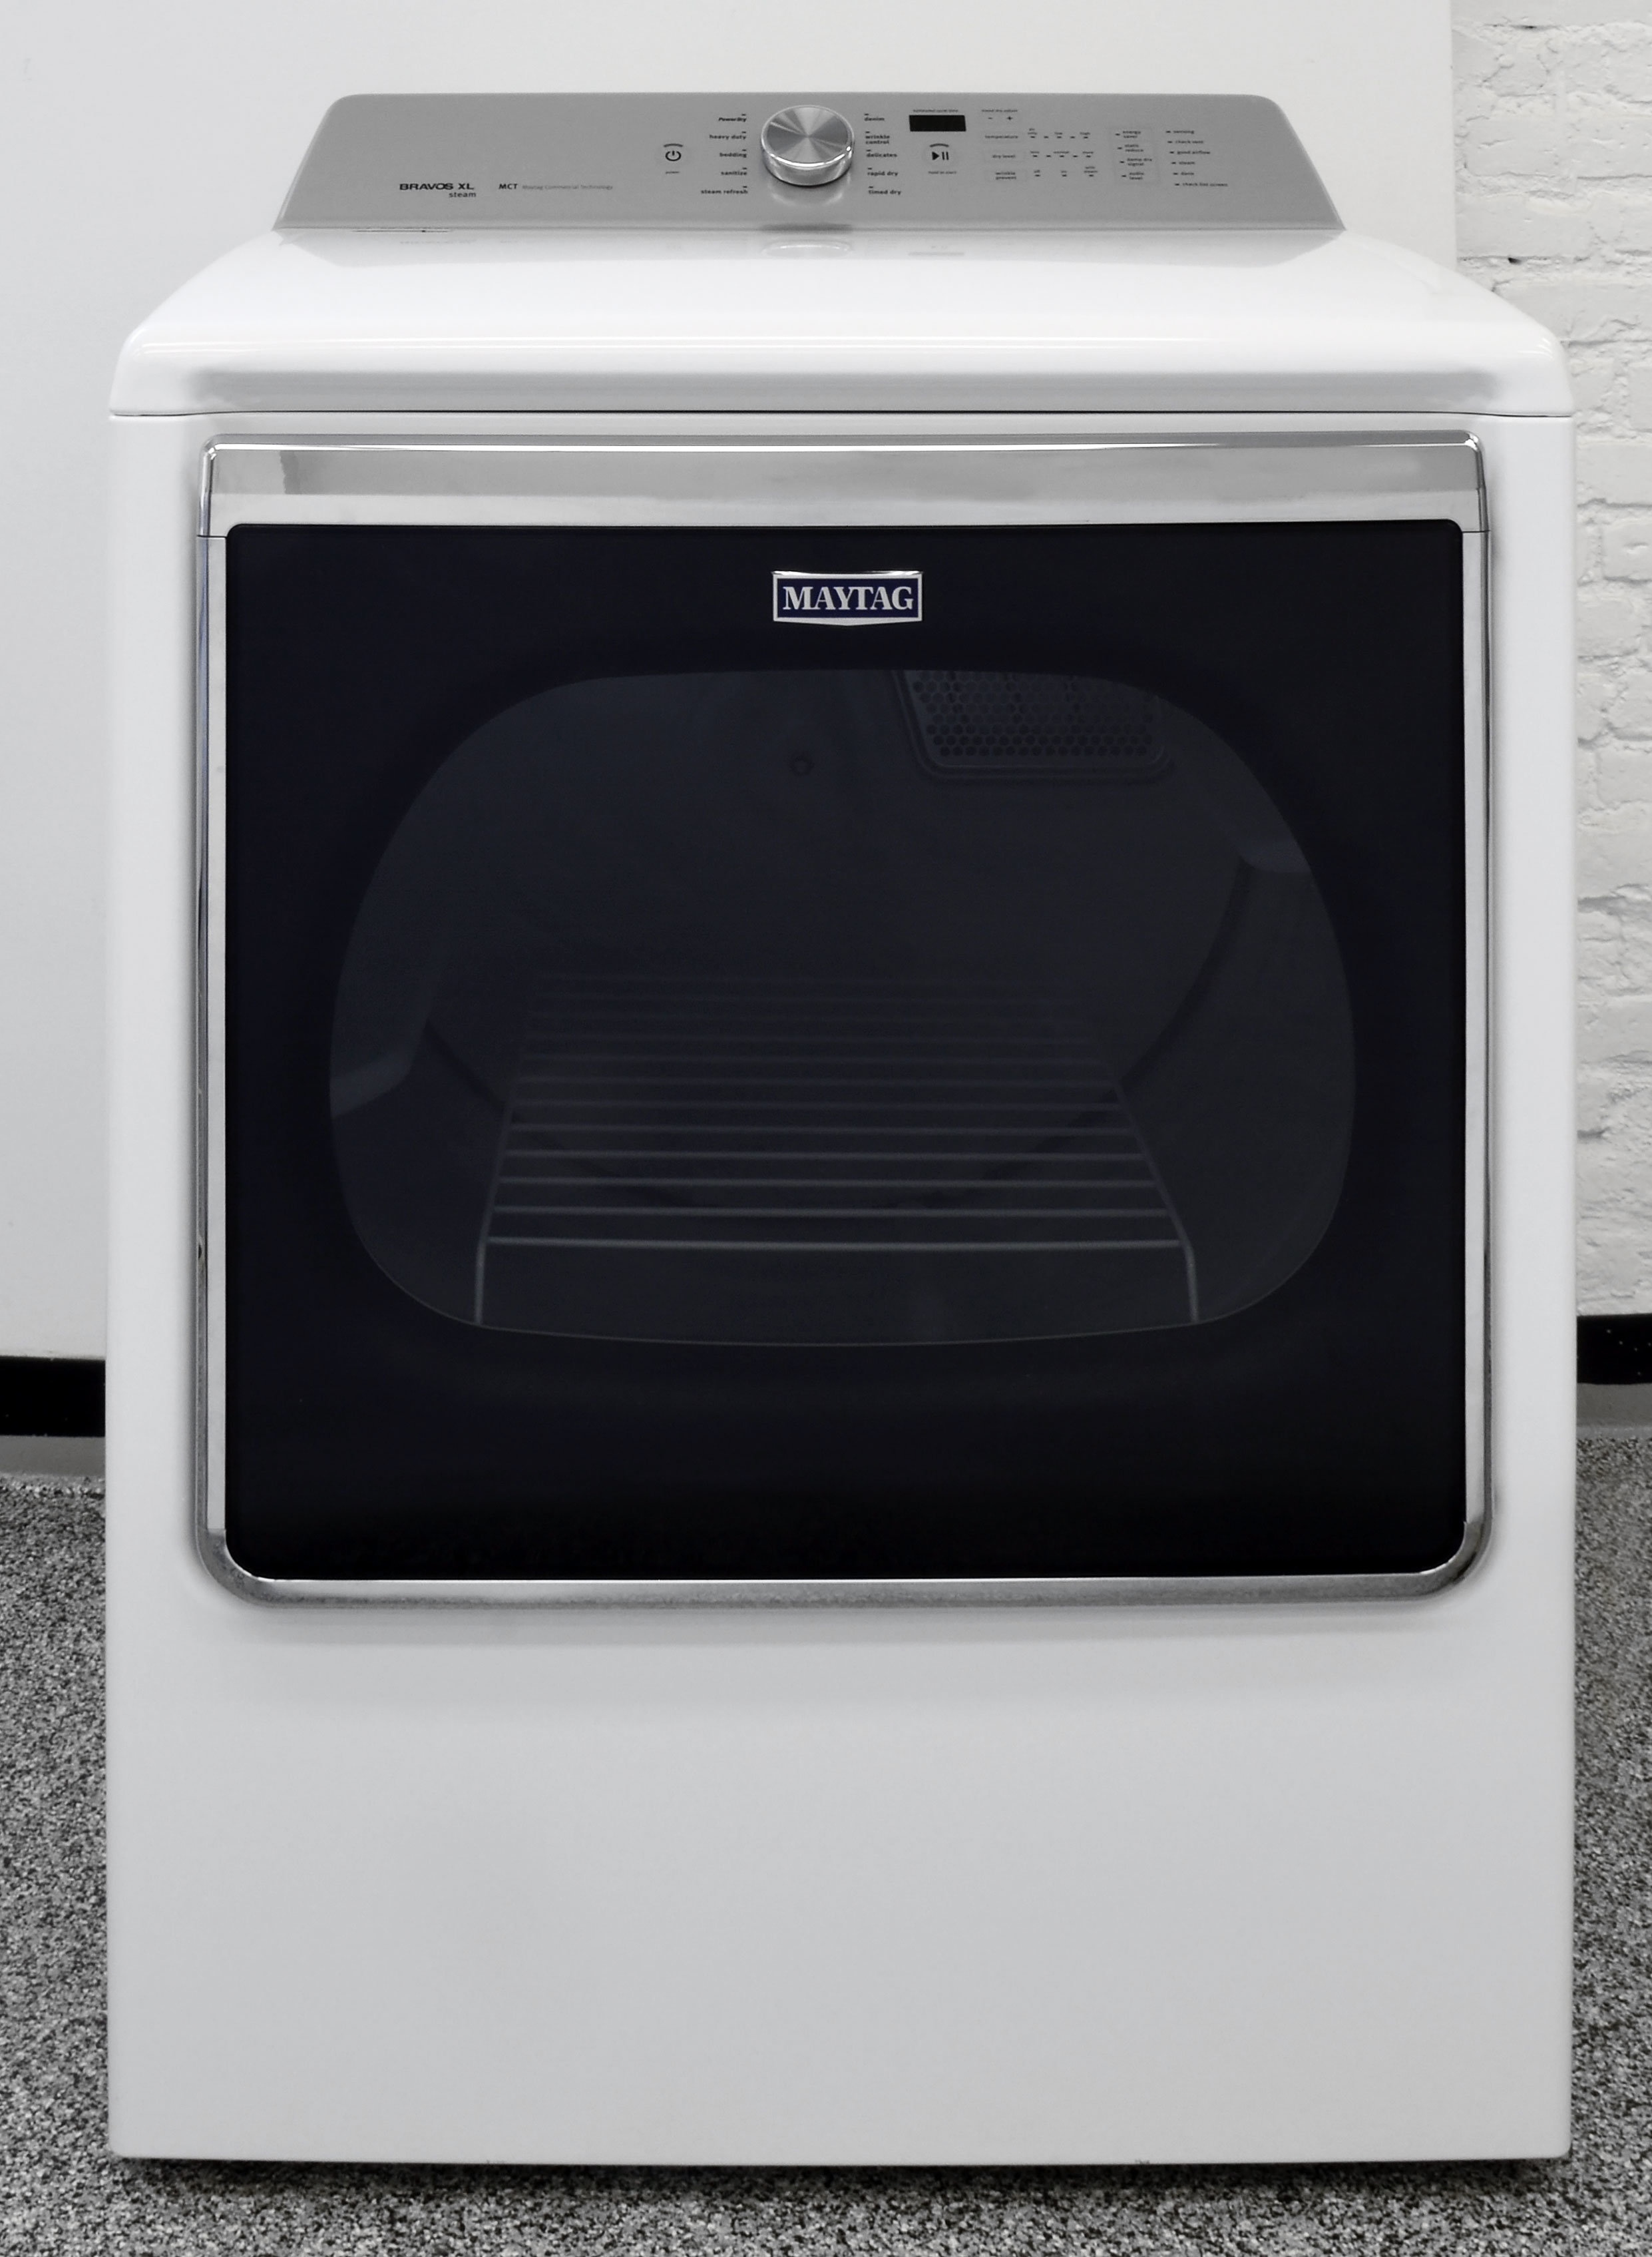 Stylish, effective, and versatile—the Maytag Bravos MEDB855DW is a winner.